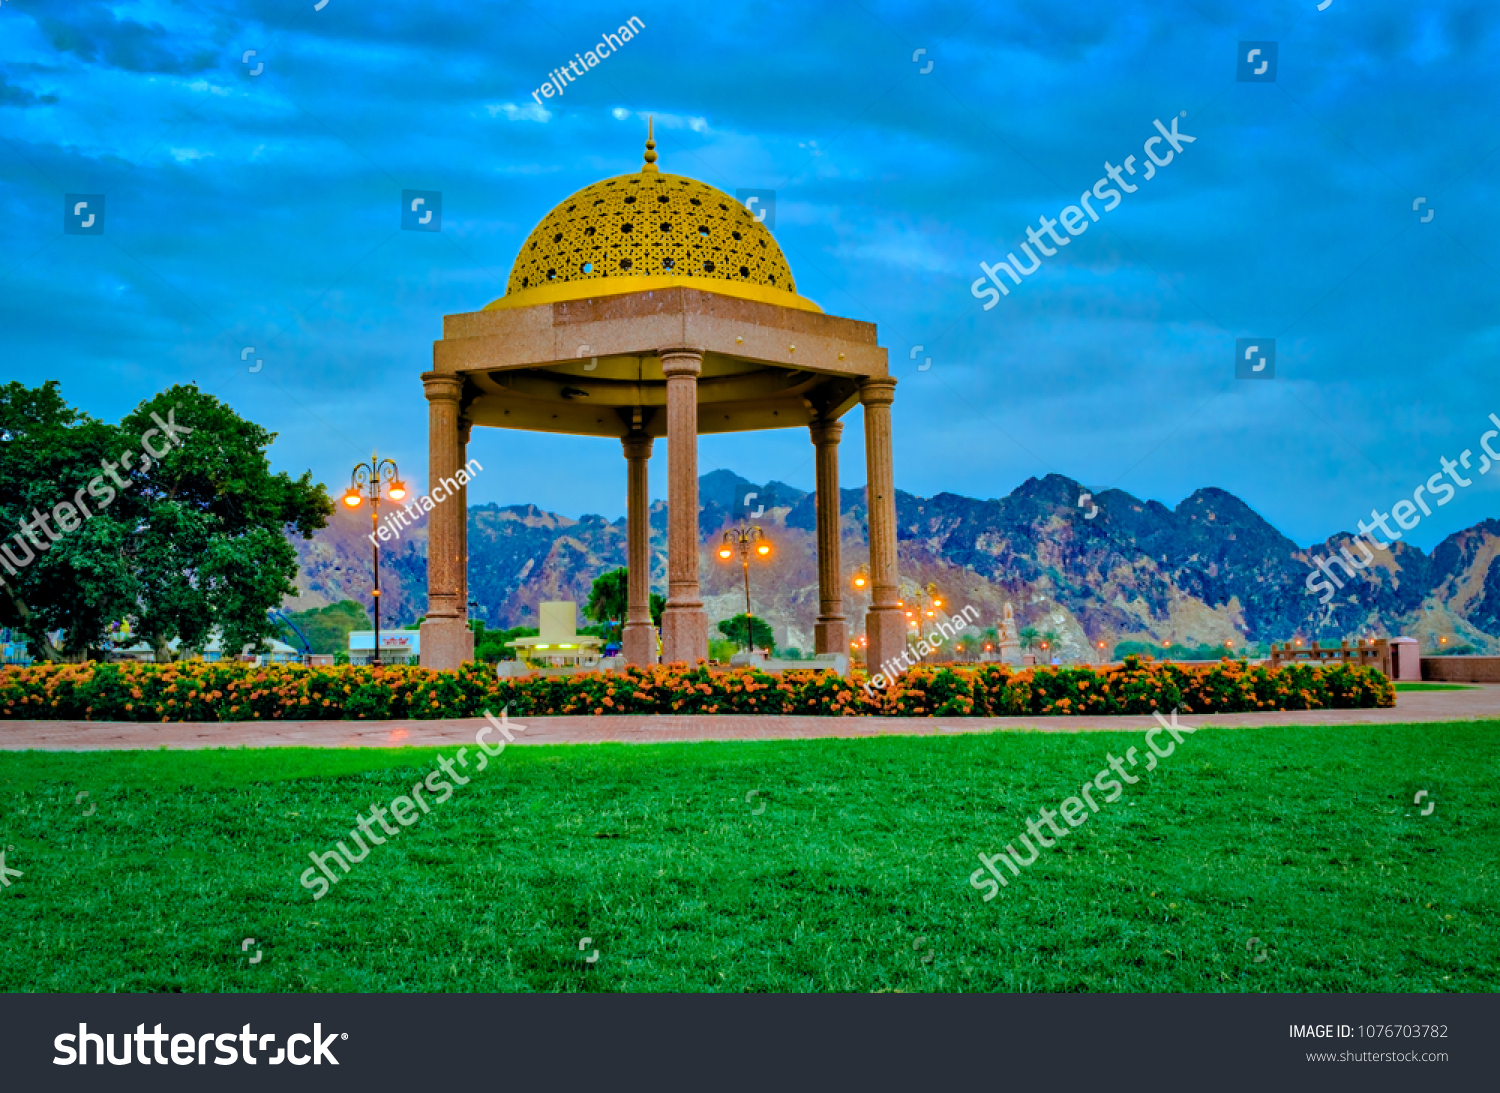 Golden Gazebo dome surrounded by green lawns, as a resting place for people in the Muttrah Corniche Park, Muscat, Oman.